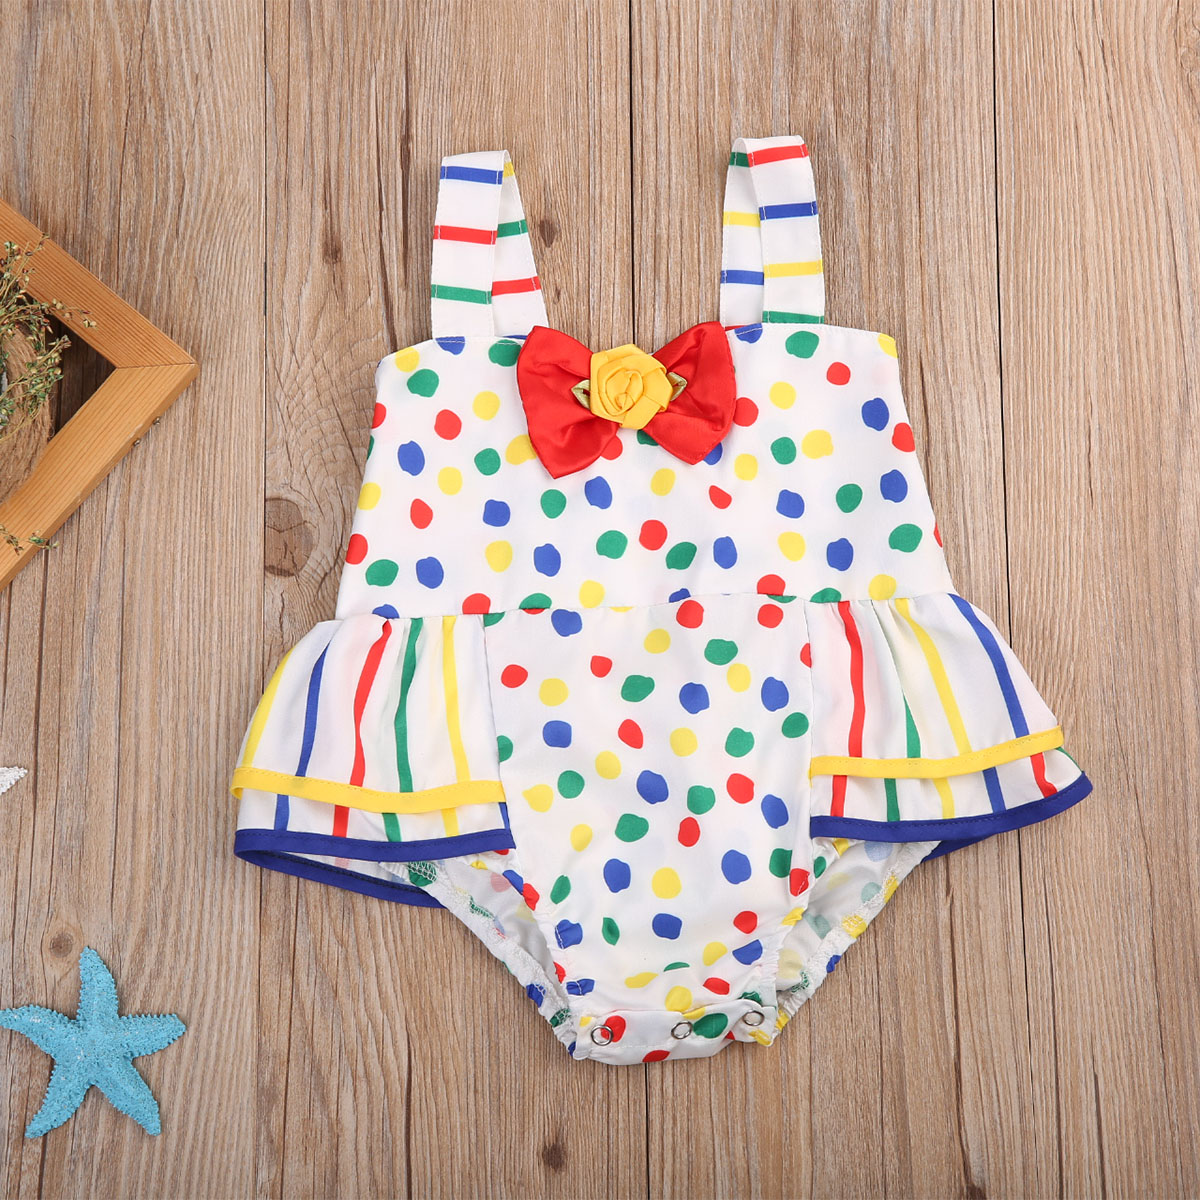 Infant Baby Girls Polka Dot   Romper   Sleeveless Jumpsuit Outfits Sunsuit Clothes